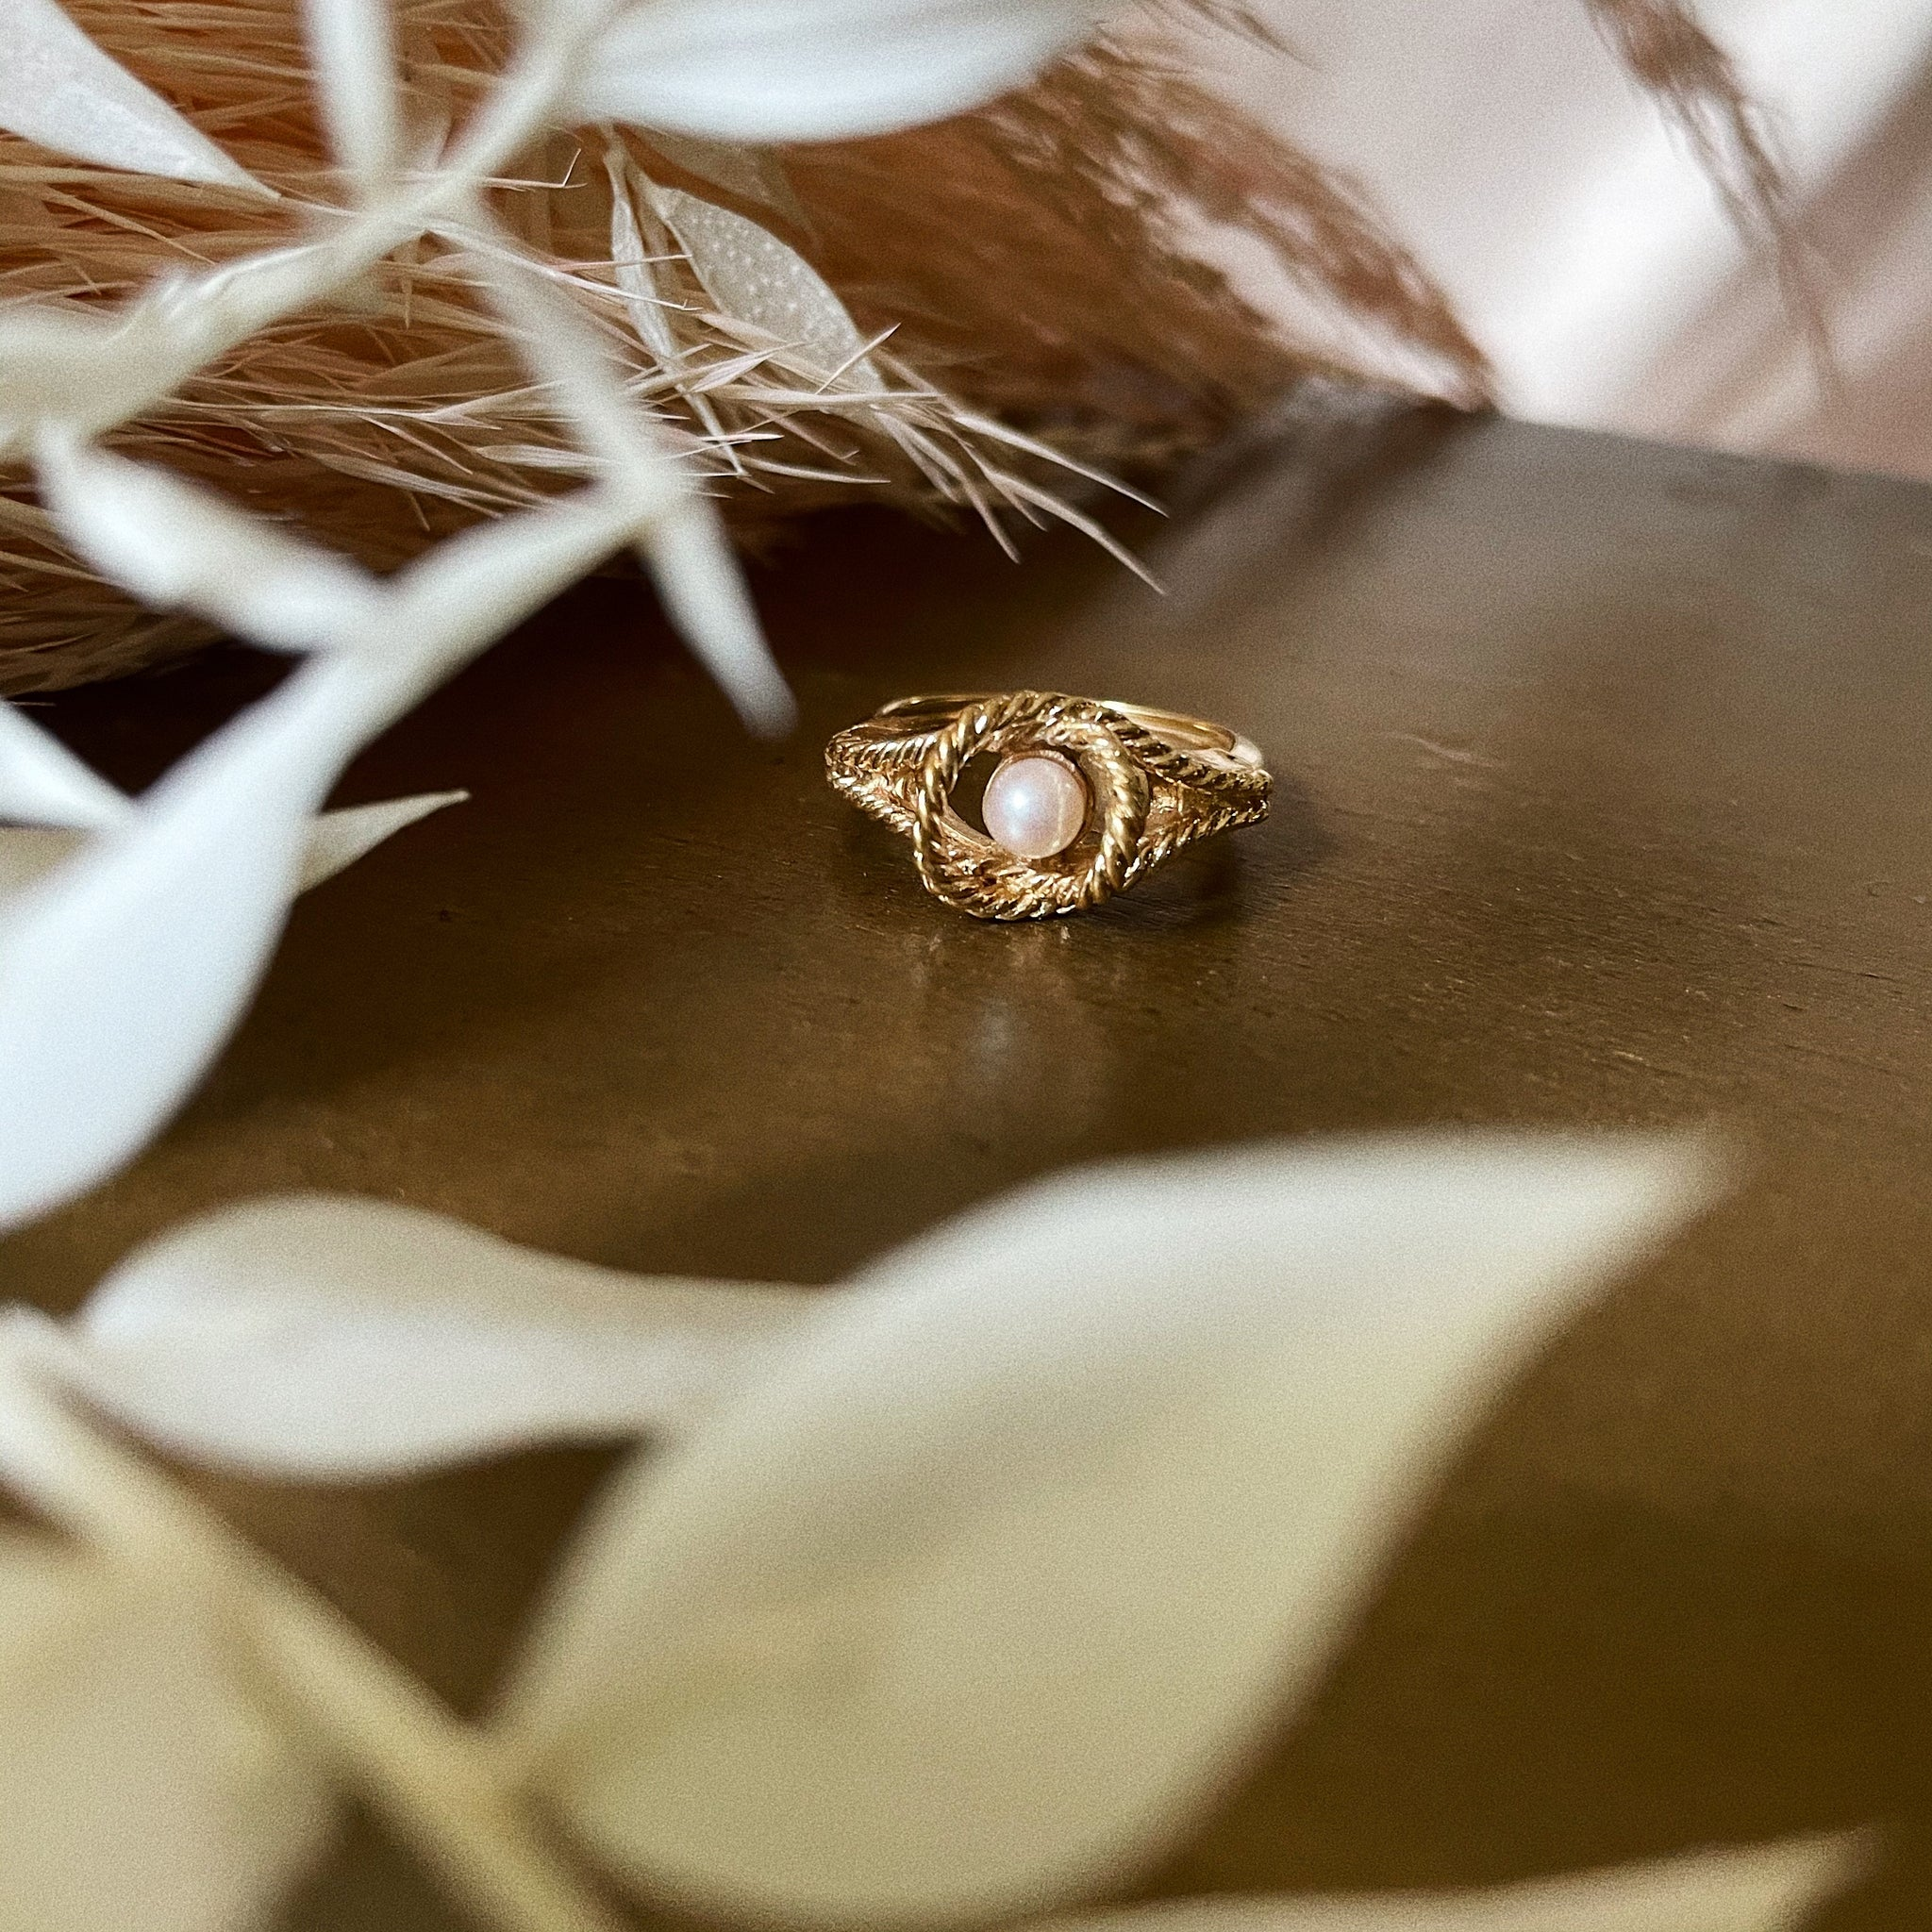 Vintage | Avon Pearl and Rope Ring | Adjustable Size 4.5